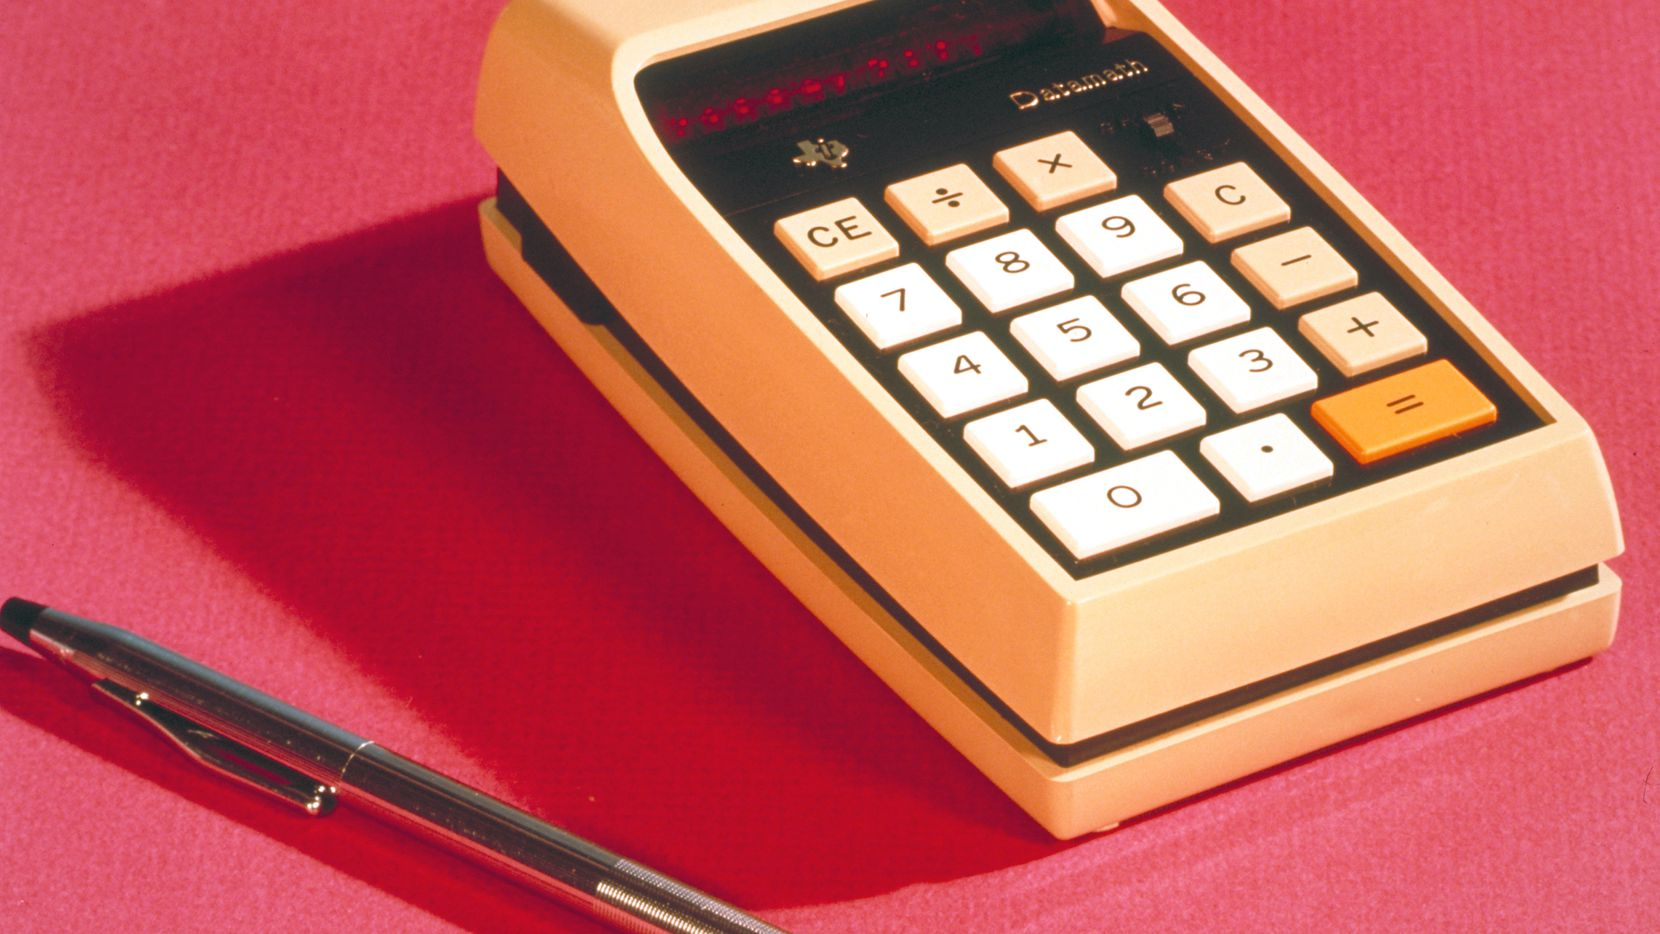 The TI-2500 DataMath, a single-chip calculator with a few basic functions, was introduced in 1972.